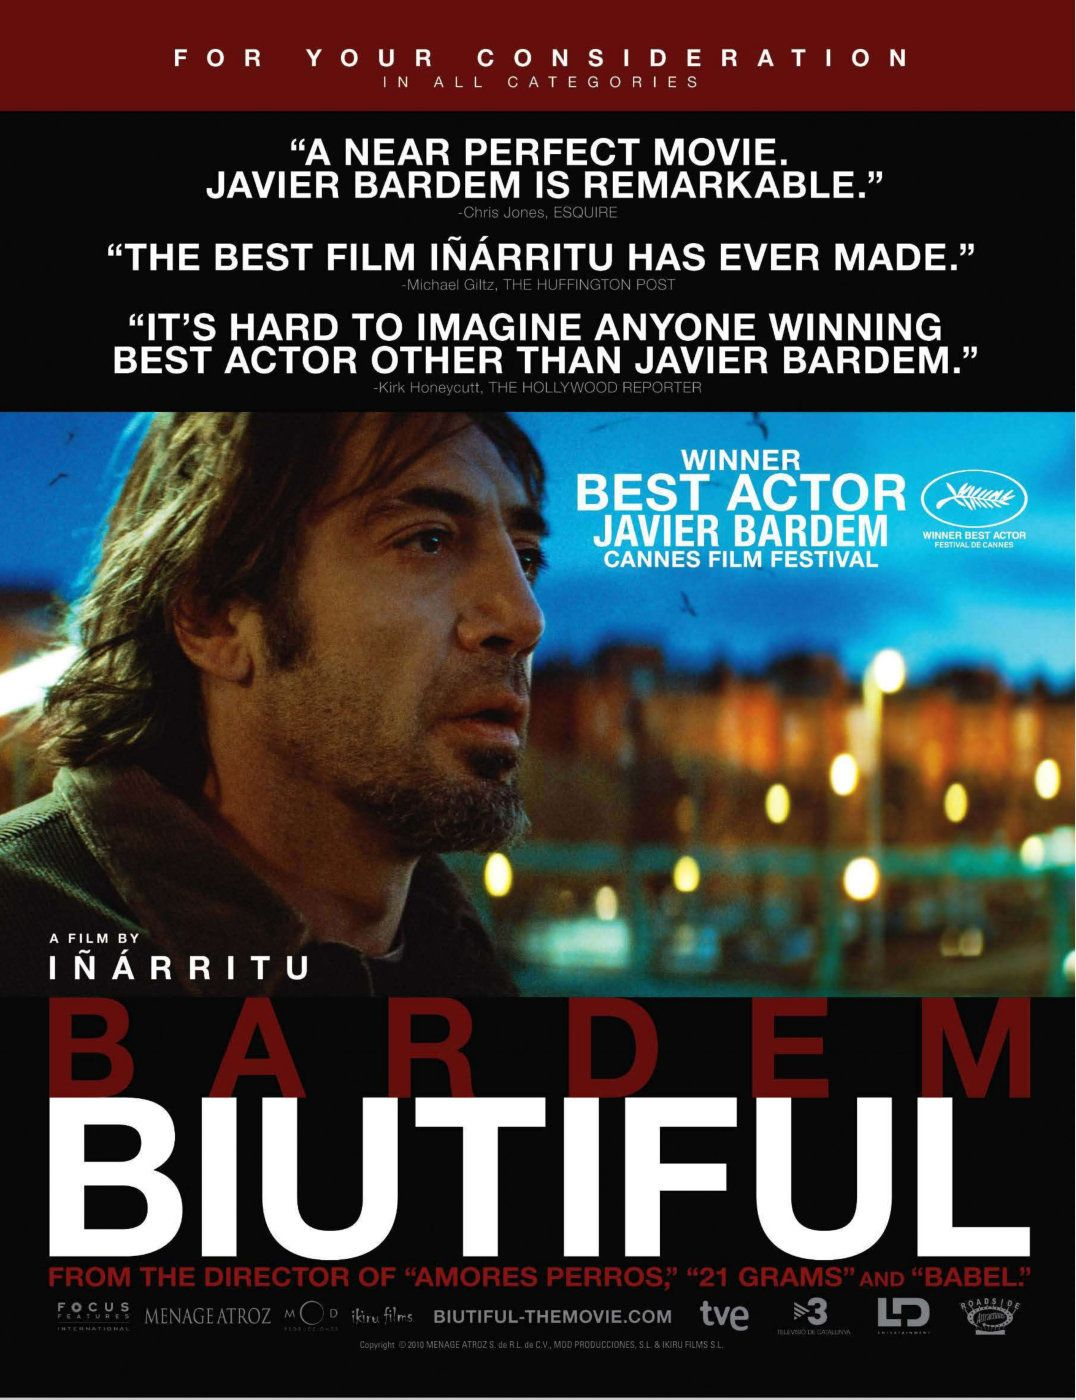 Biutiful awards consideration entry: a film by director Alejandro González Iñárritu